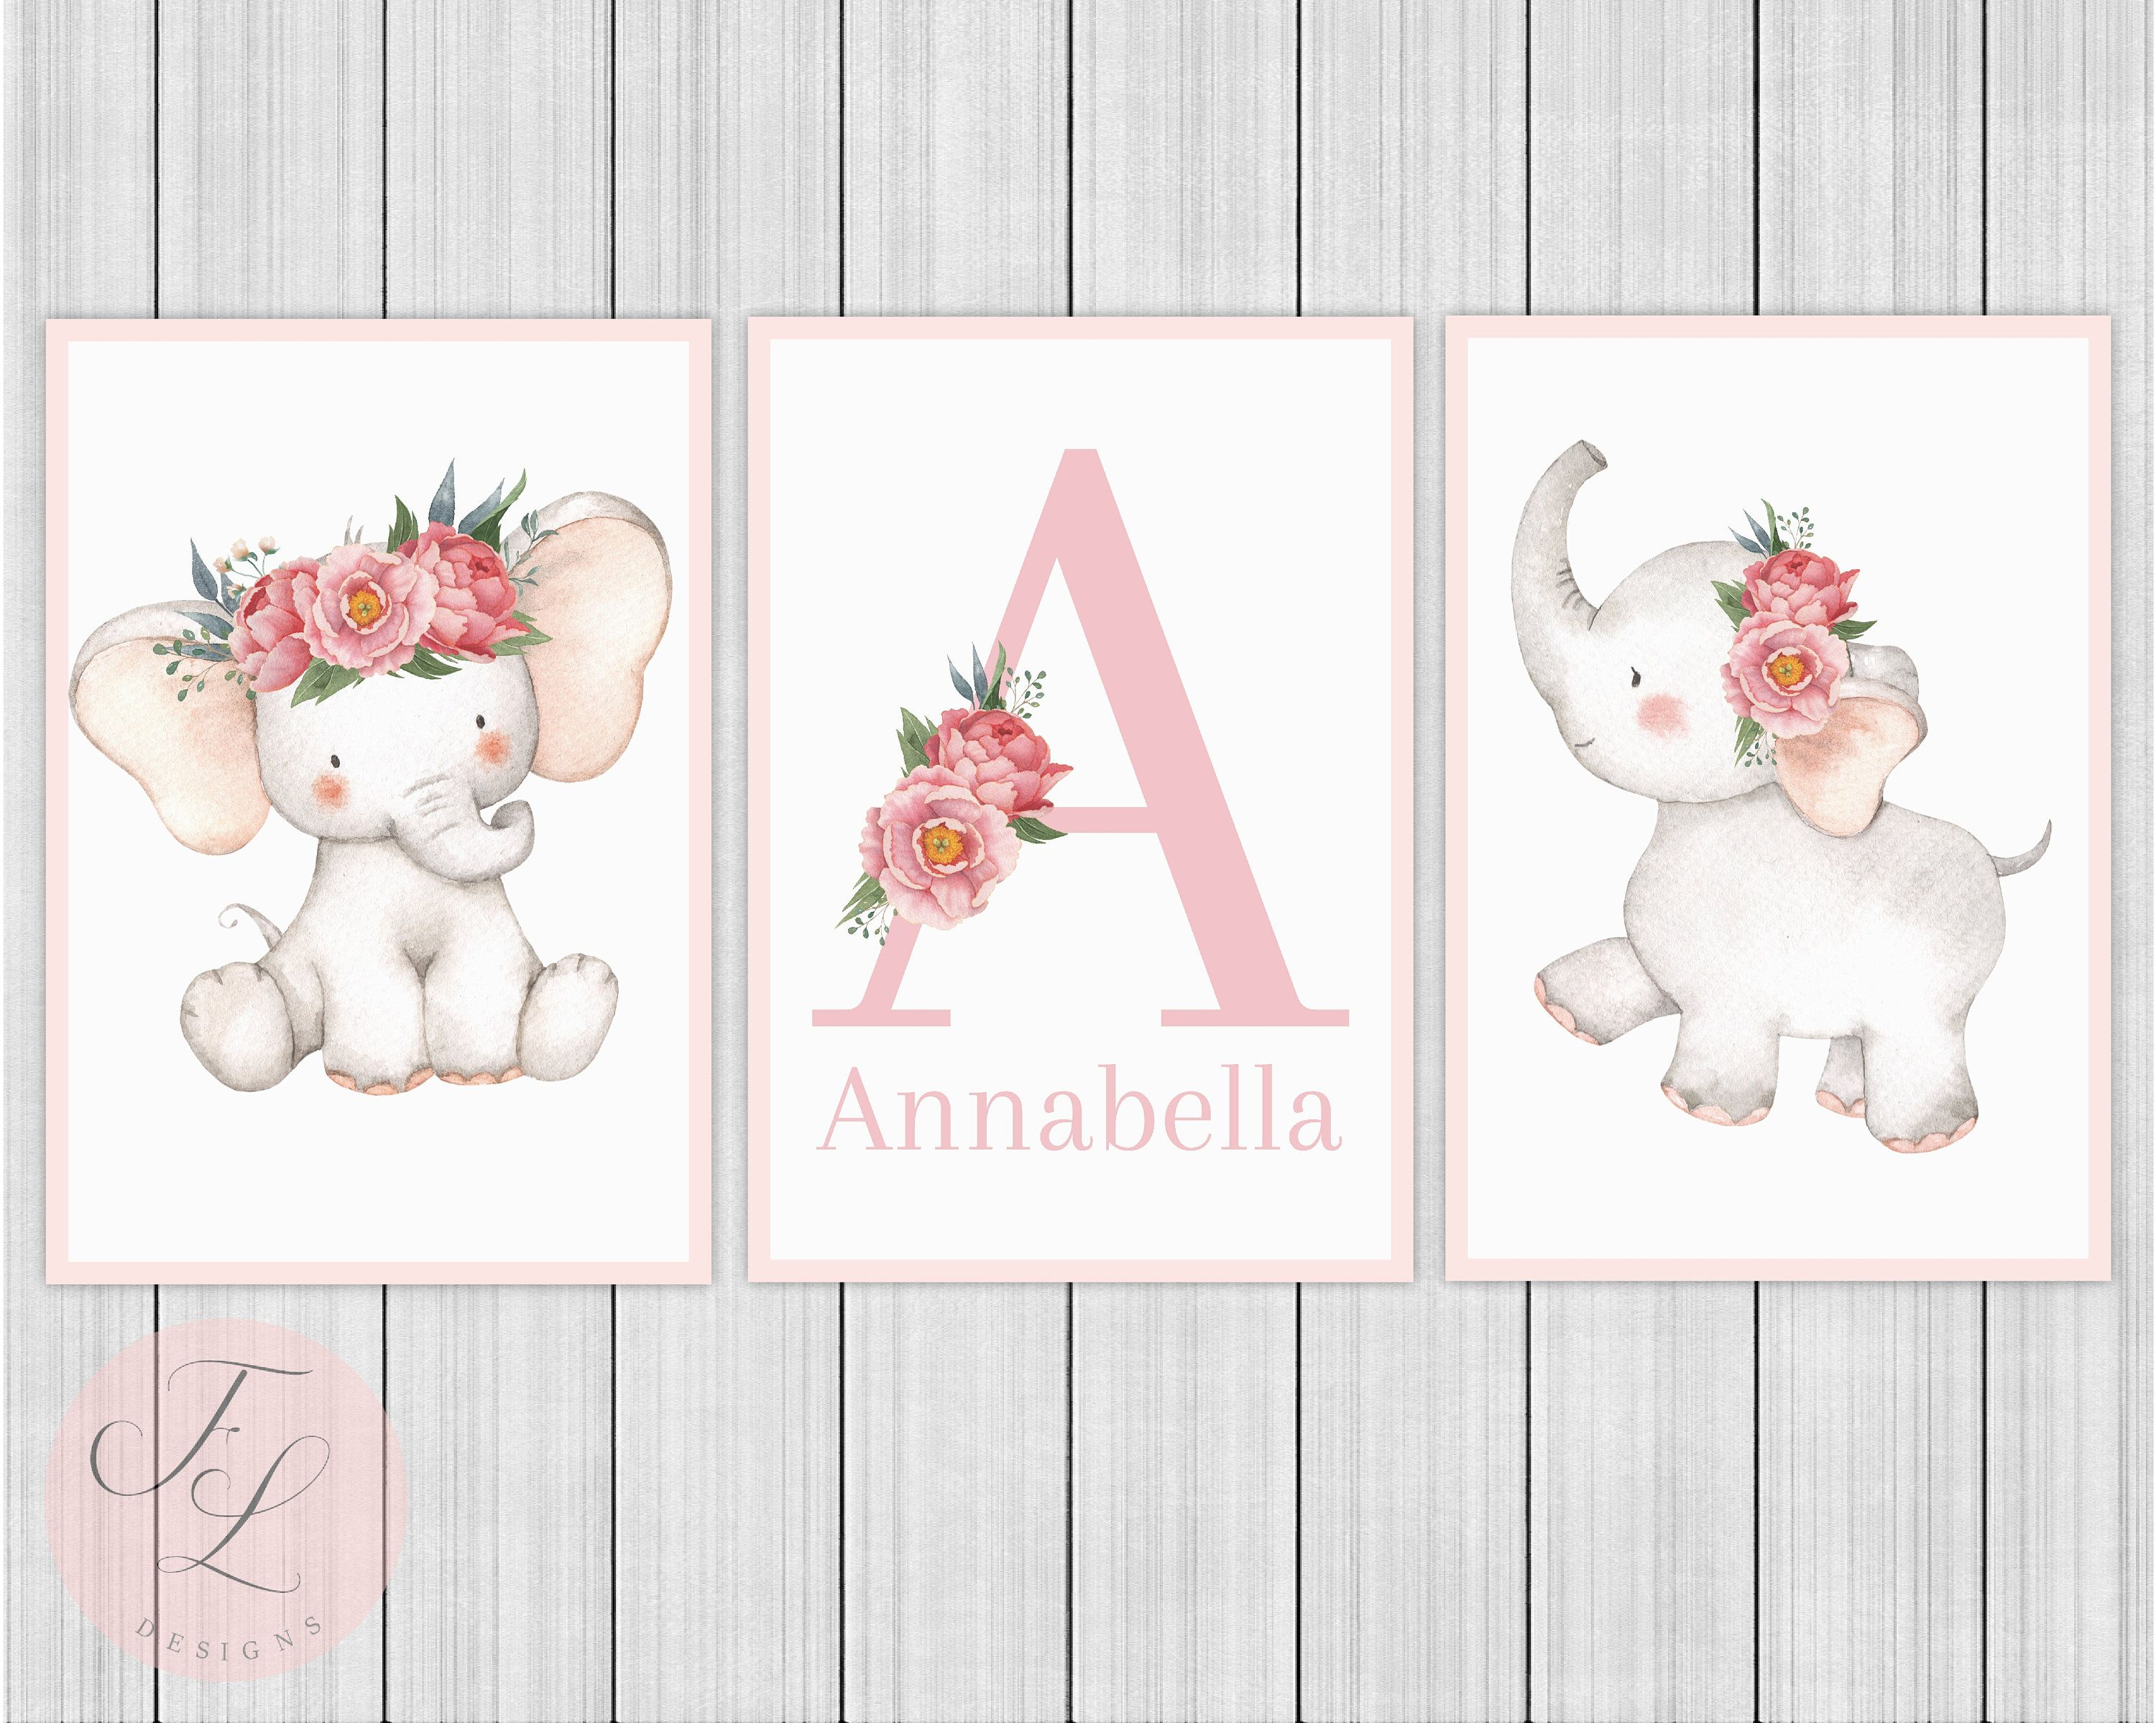 3 Personalised Nursery Name Prints Cute Flower Elephant Baby Room Wall Art Decor